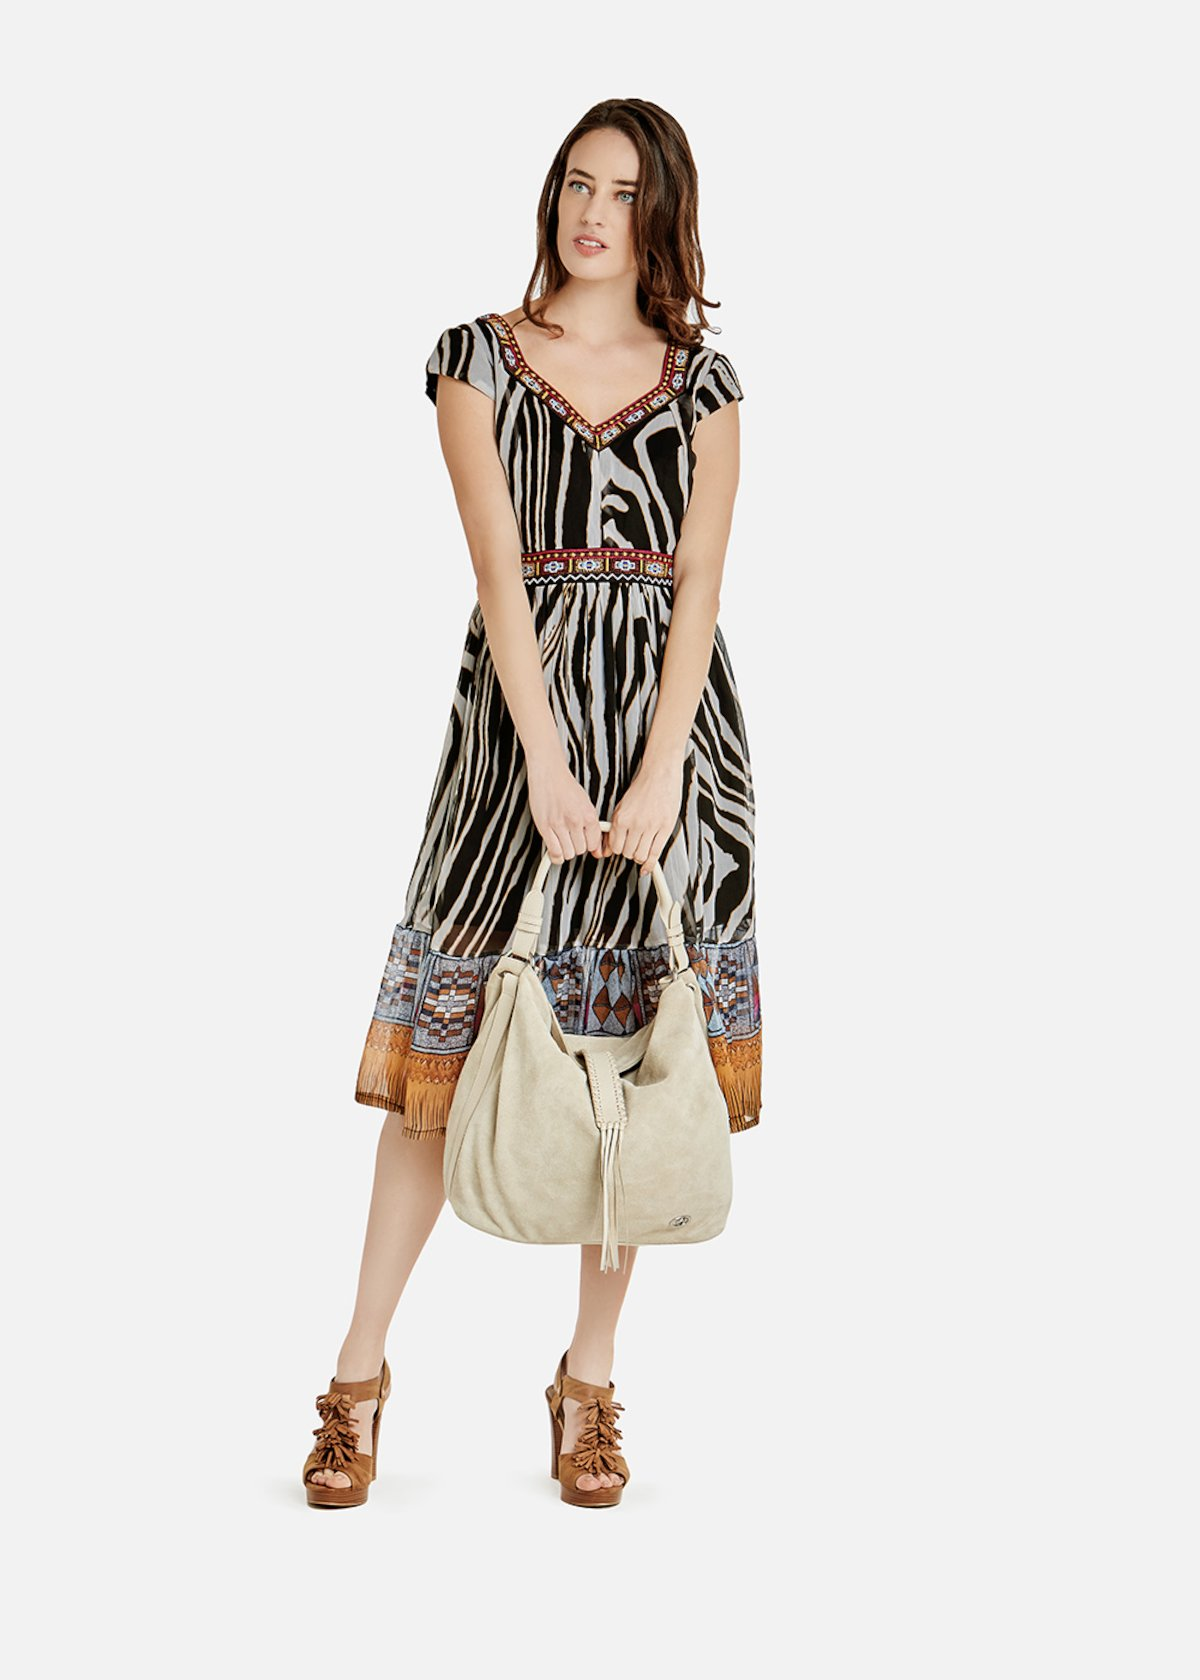 Agos long dress with zebra pattern